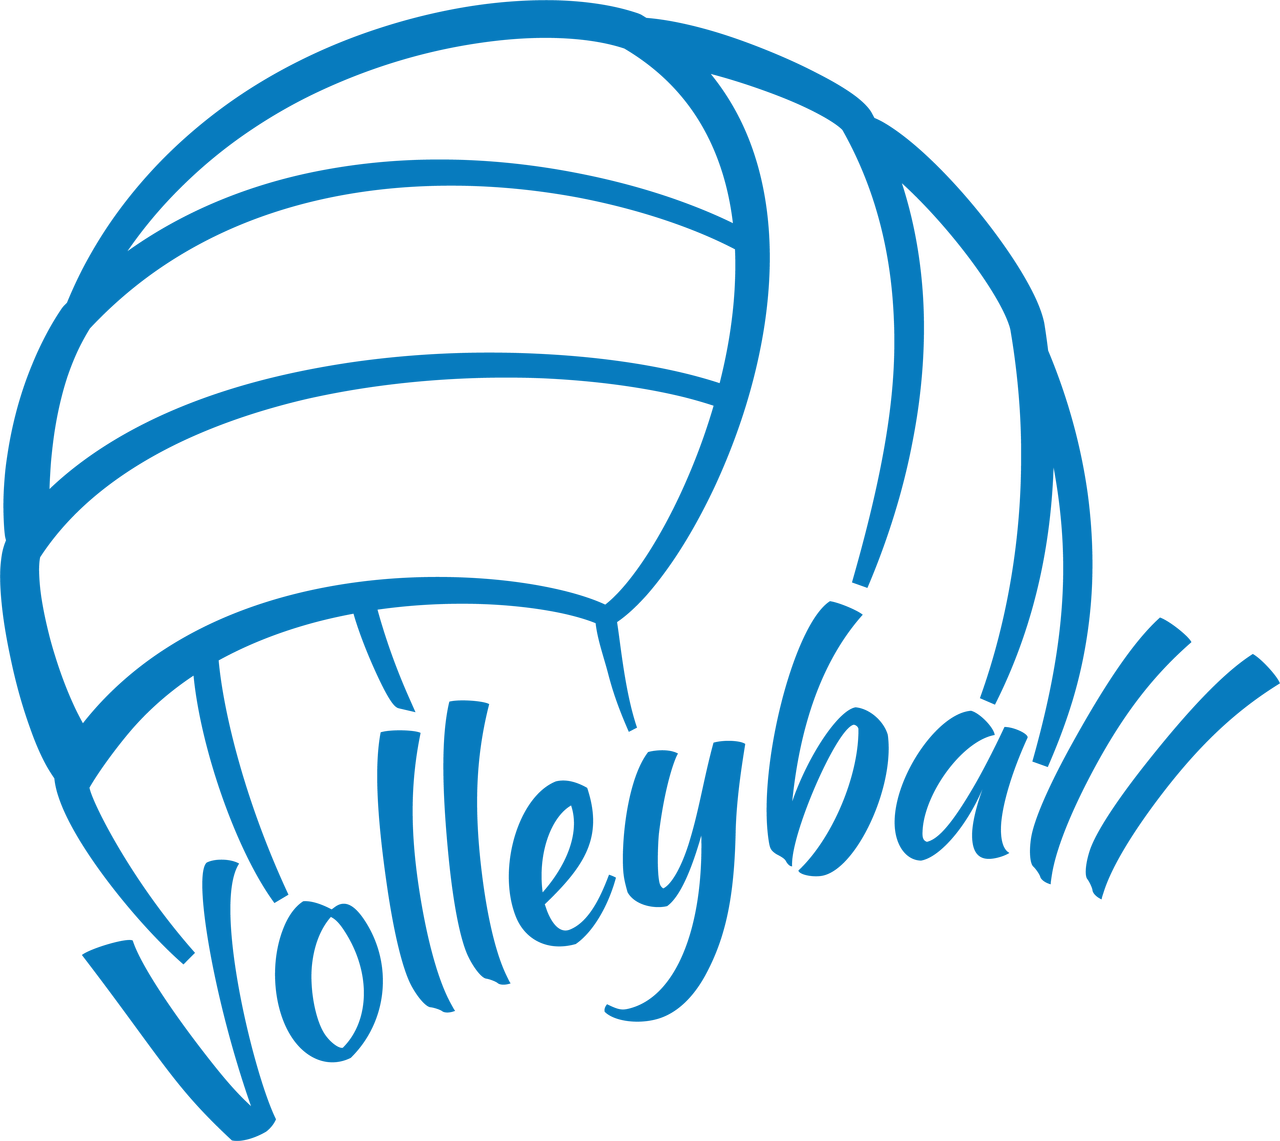 Image Result For Volleyball Svg Files Silhouette Design Design Store Allianz Logo